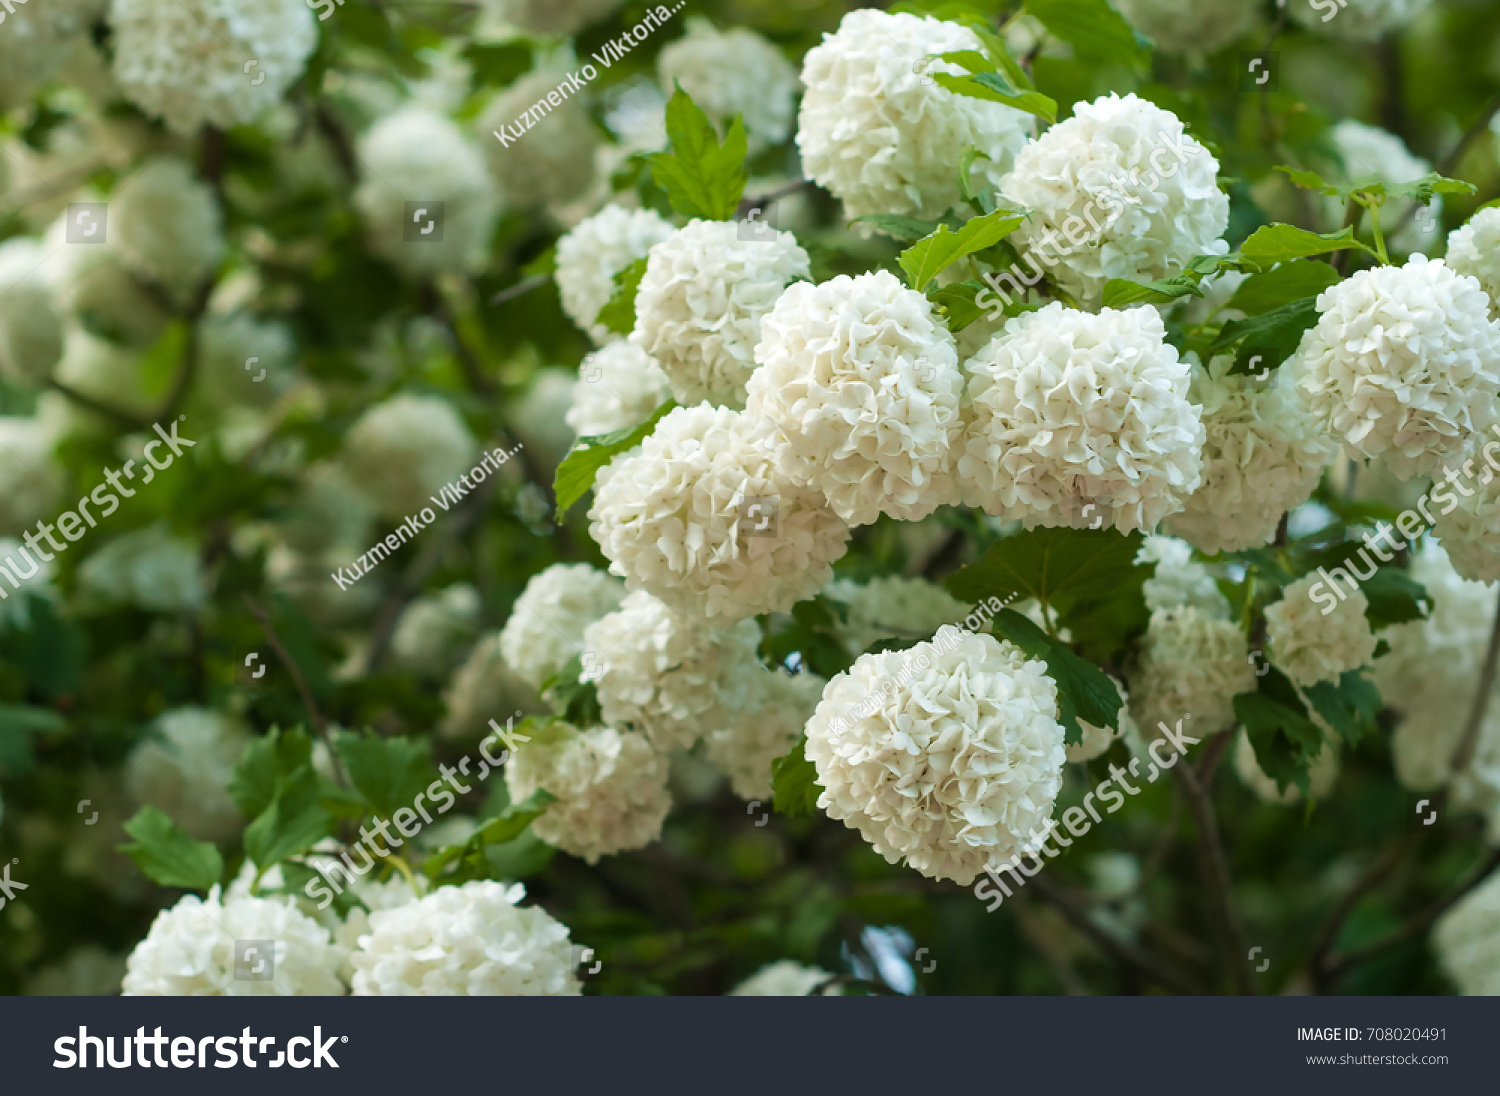 Chinese snowball viburnum flower heads snowy stock photo royalty chinese snowball viburnum flower heads are snowy blooming of beautiful white flowers in the summer mightylinksfo